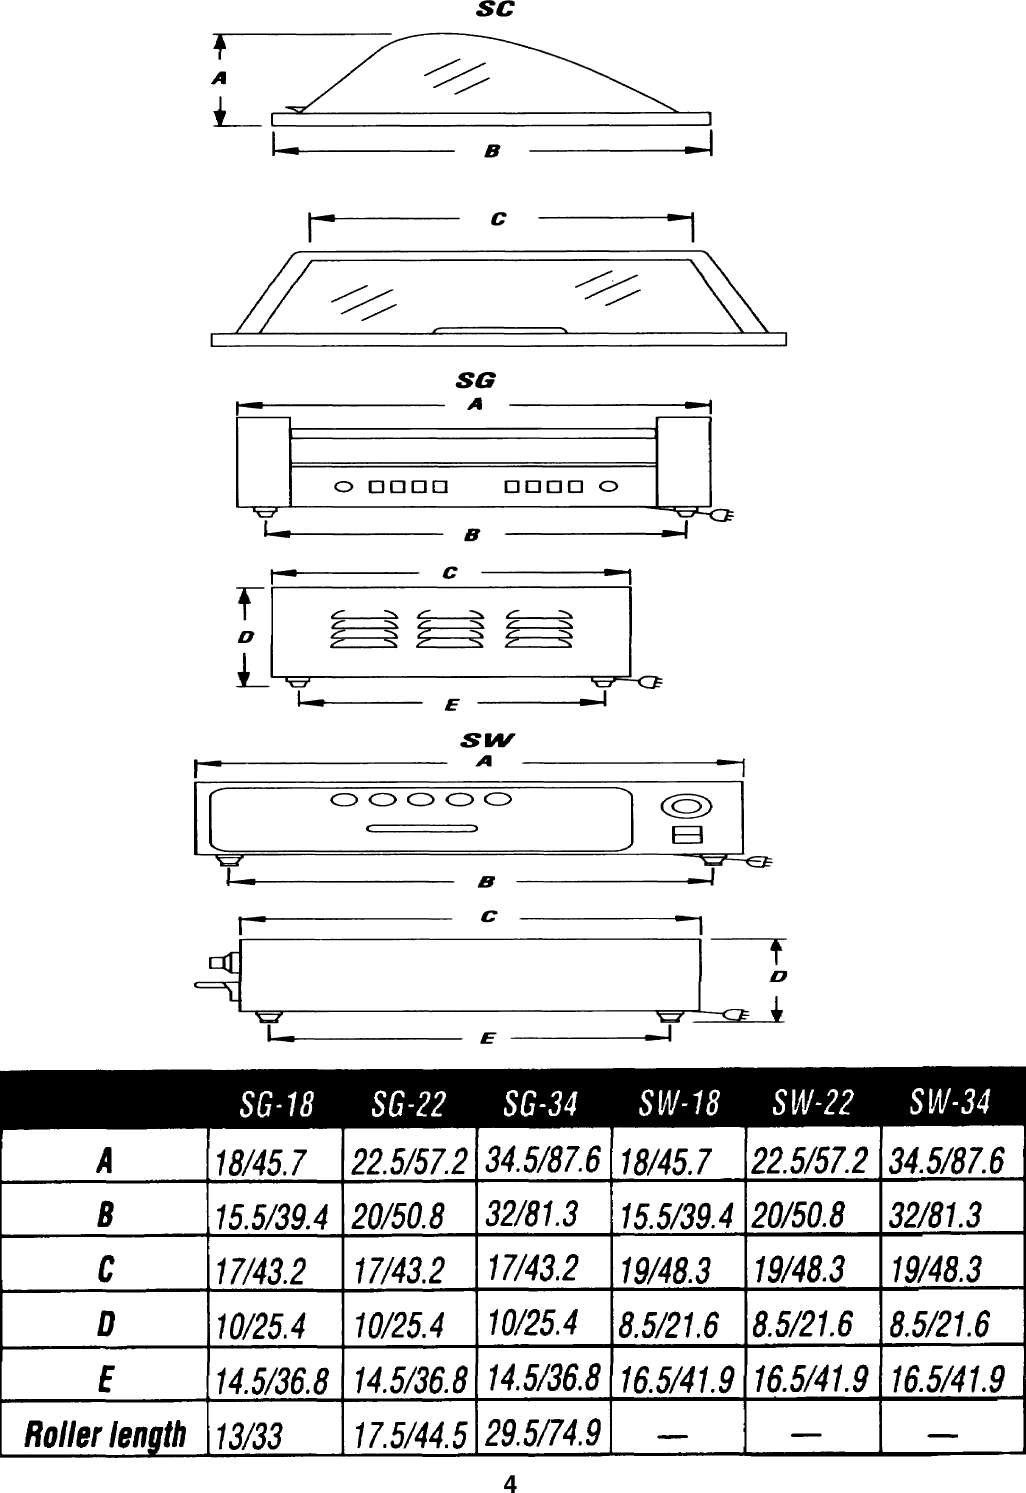 Merco Savory Hot Dog Grill Sg 22 Users Manual Wiring Diagram Page 4 Of 8